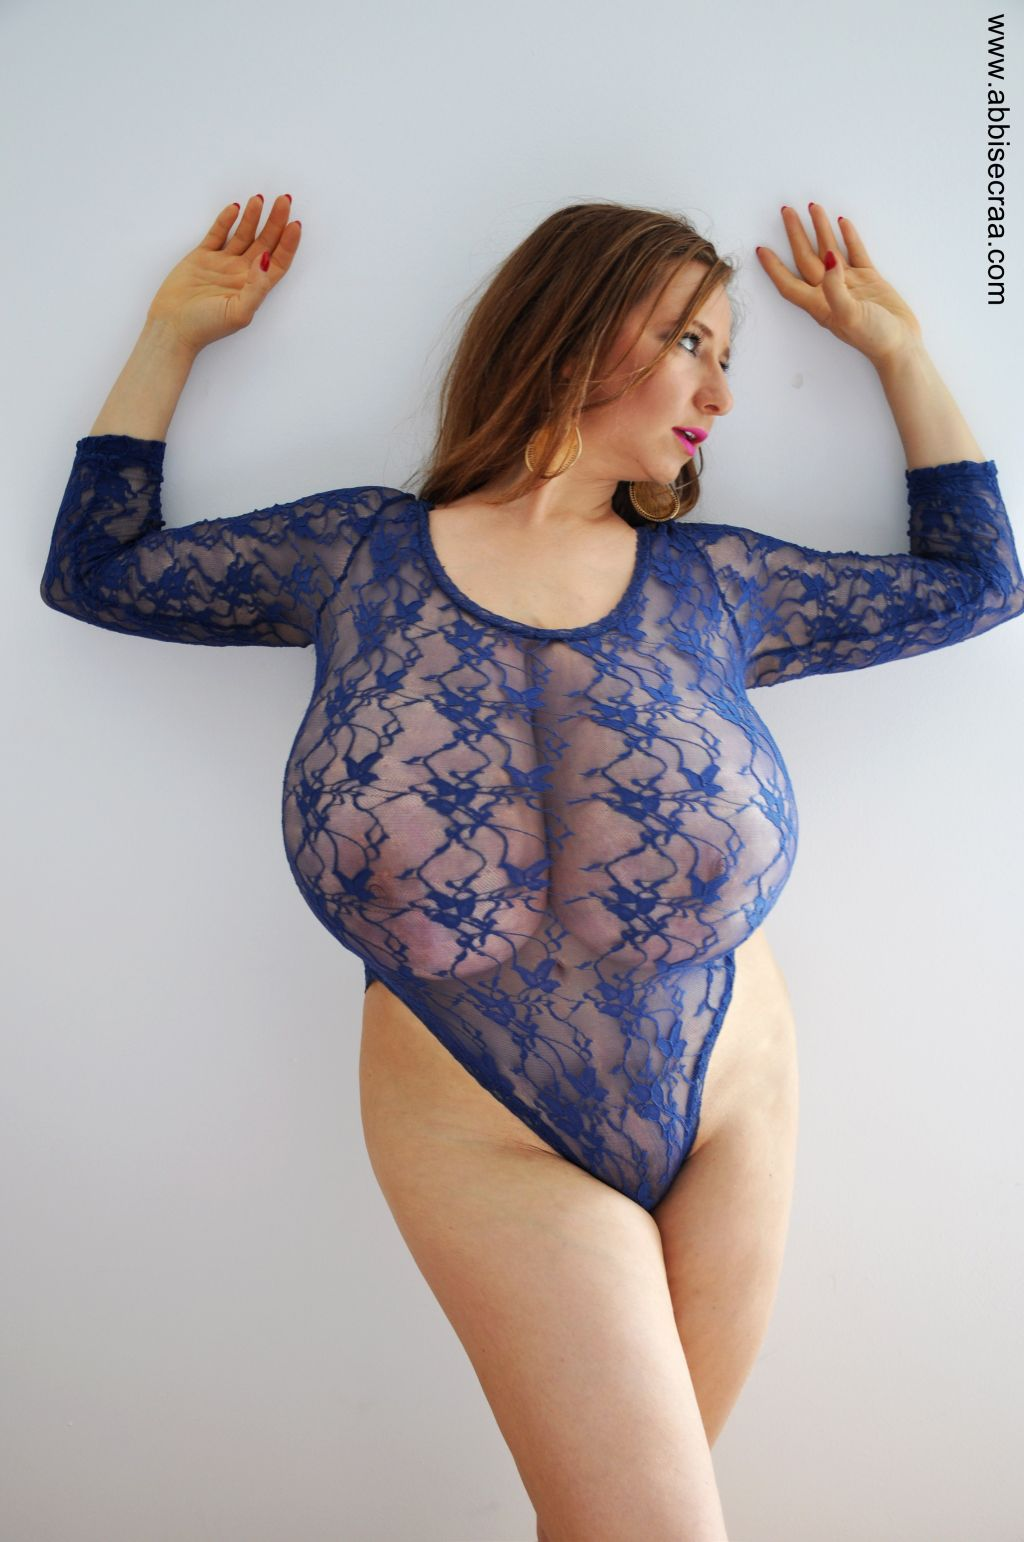 Breasts' impression - photos